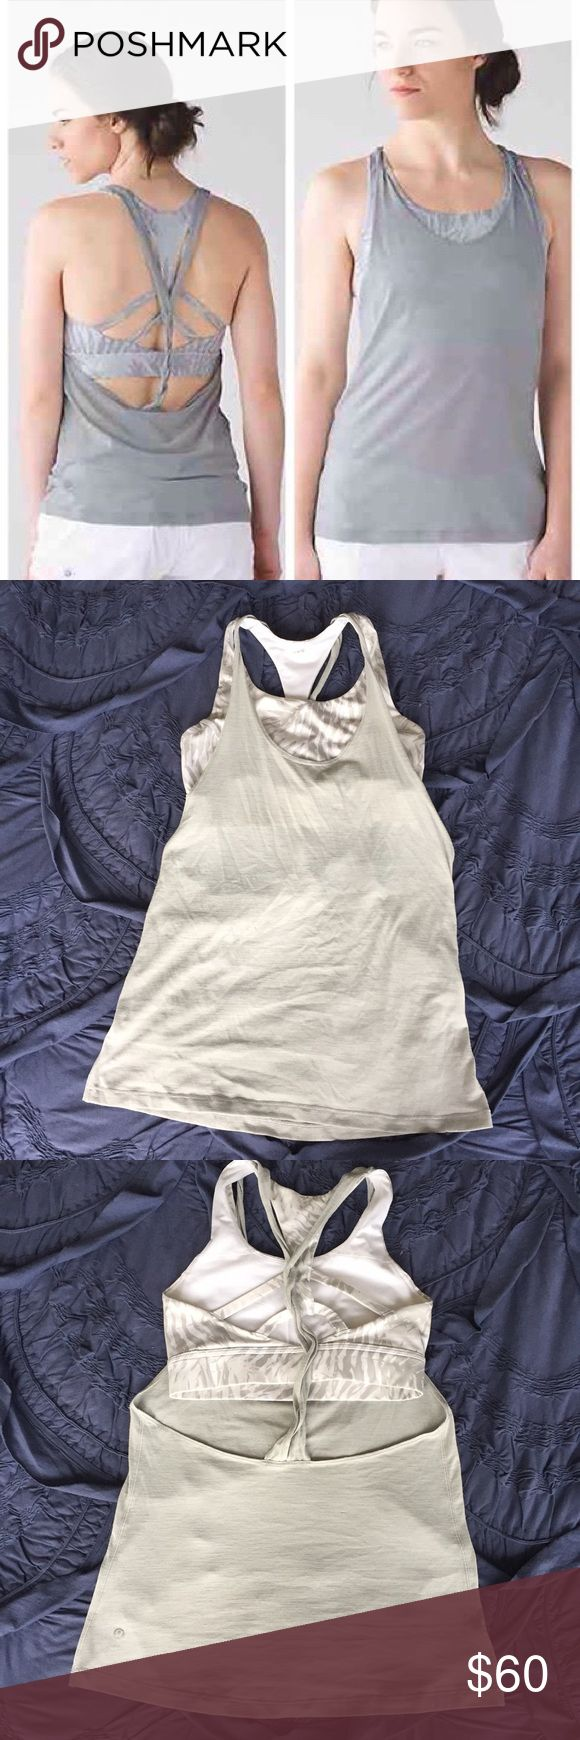 "Lululemon Twist and Toil tank Lululemon ""Twist and Toil"" tank, size 4. Heathered seal grey tank with attached sports bra in palm camel white nimbus. Super cute, just too small for me now! Like new. lululemon athletica Tops Tank Tops"